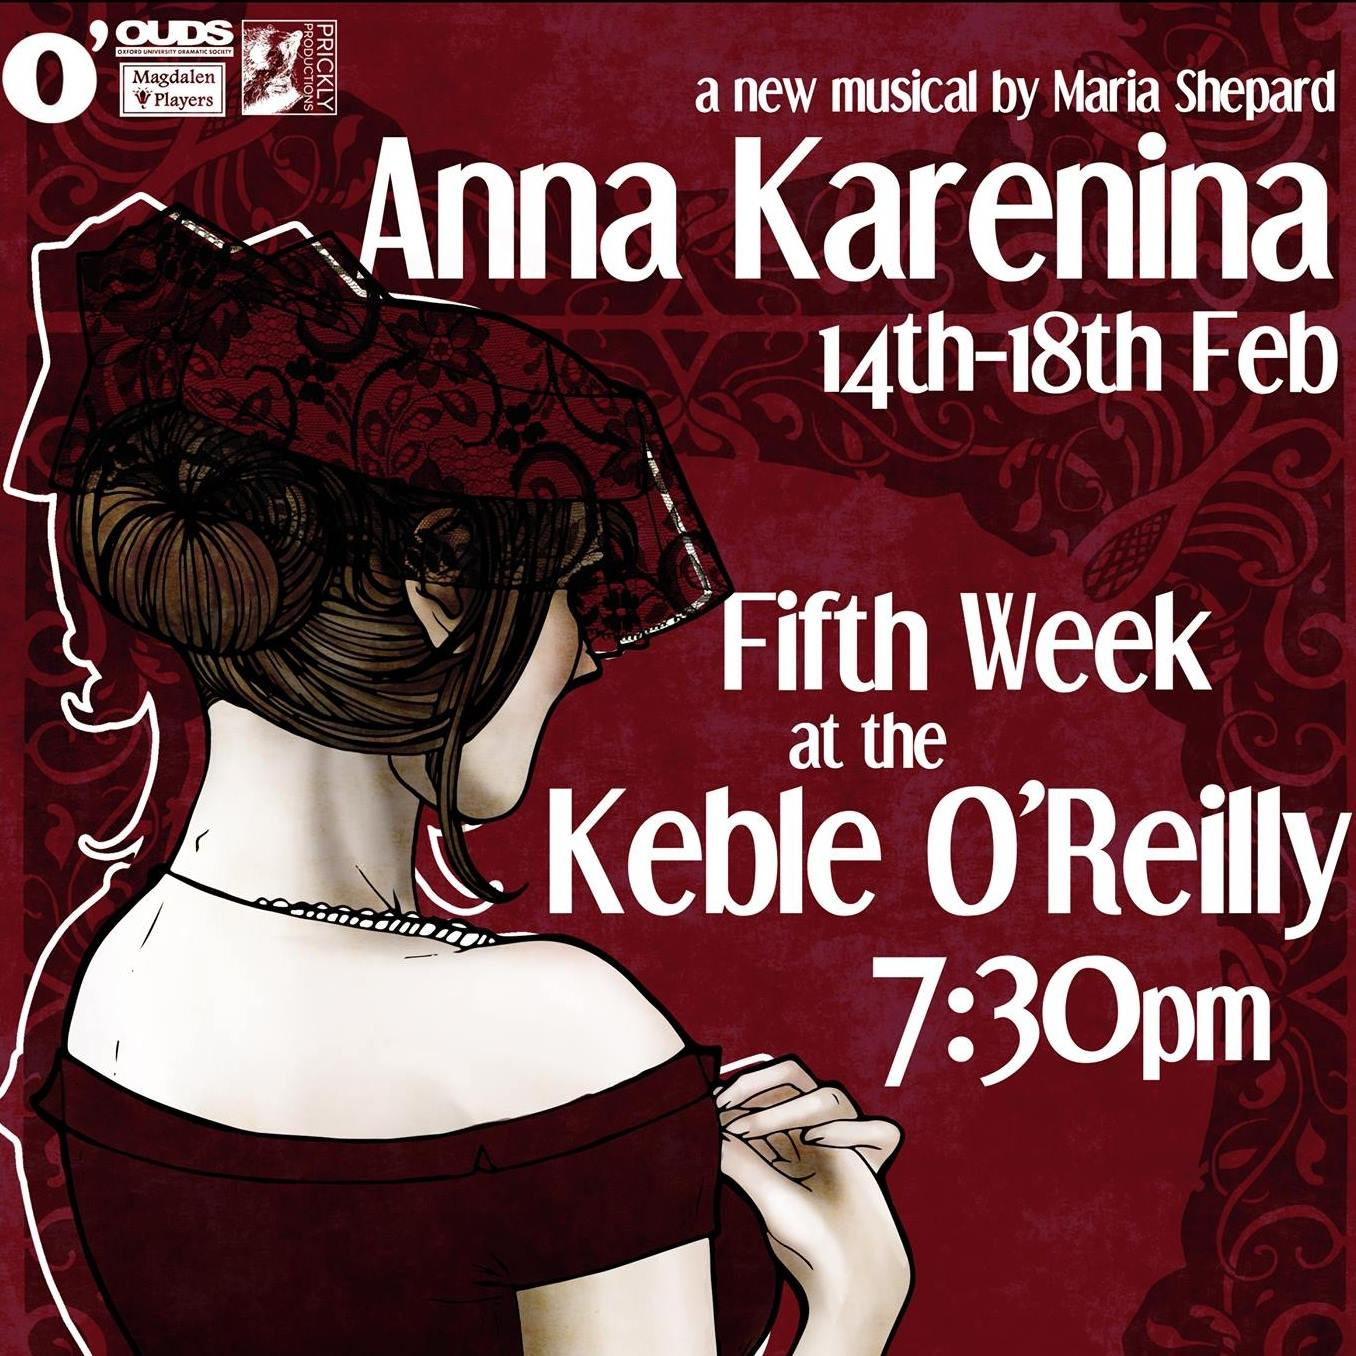 Anna Karenina is fearless, spirited and surprising: A Preview